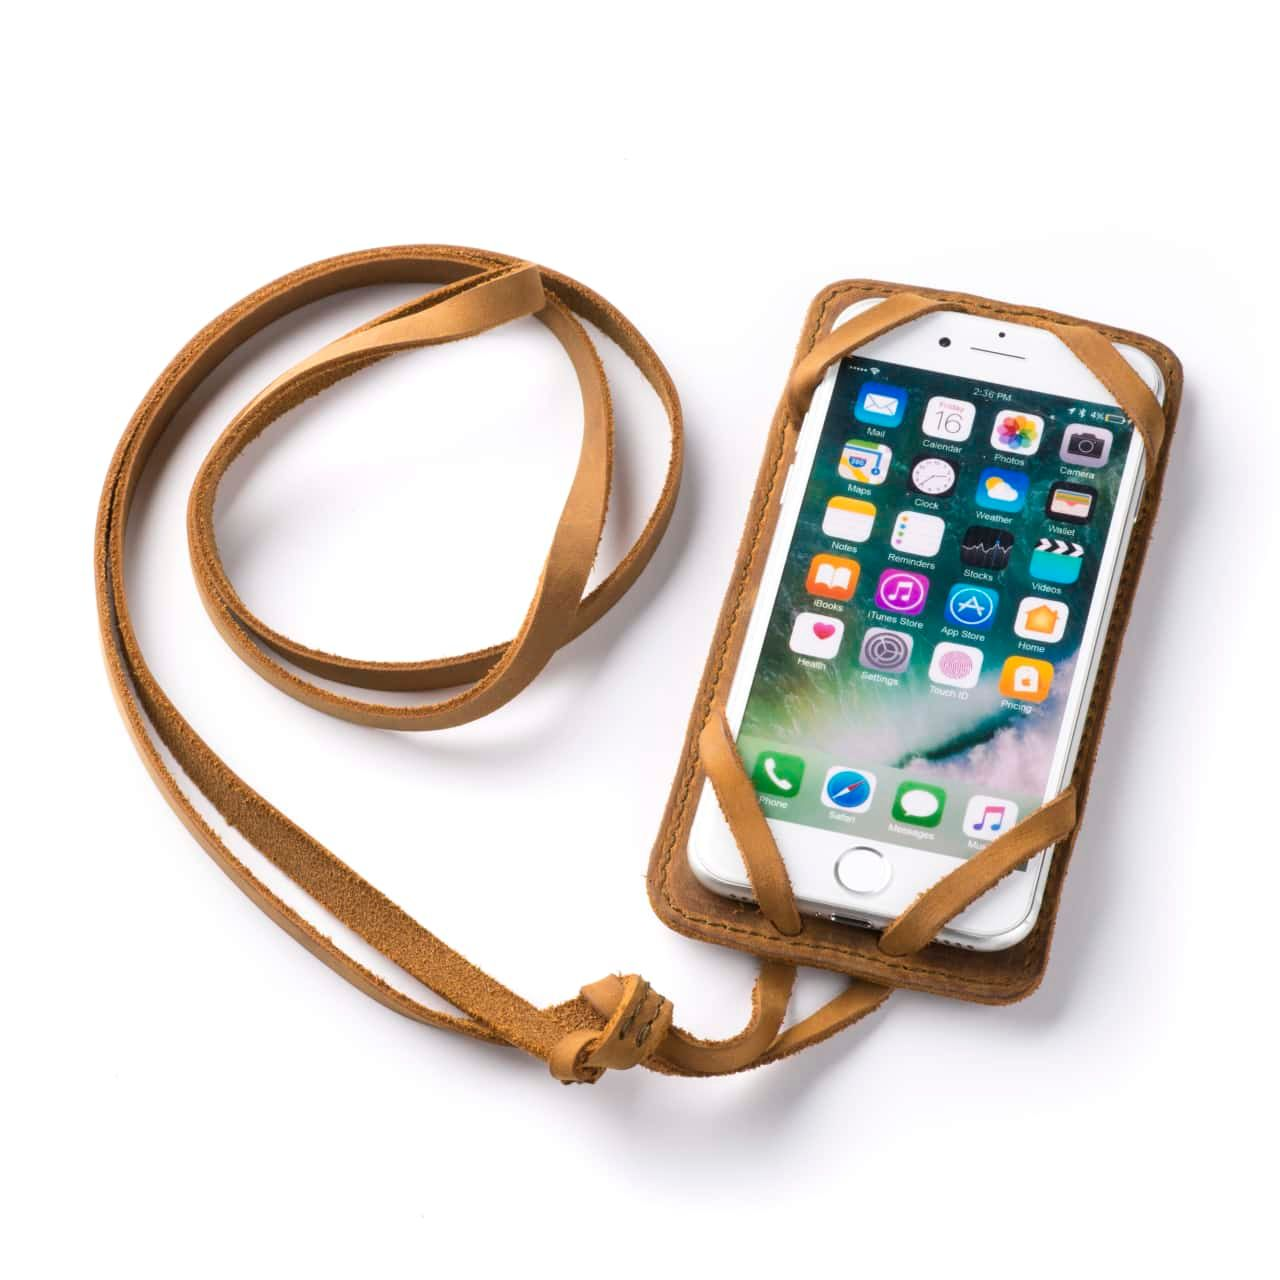 Leather iPhone 8 Case in Color Tobacco with the Lanyard attached front angle with phone in the case